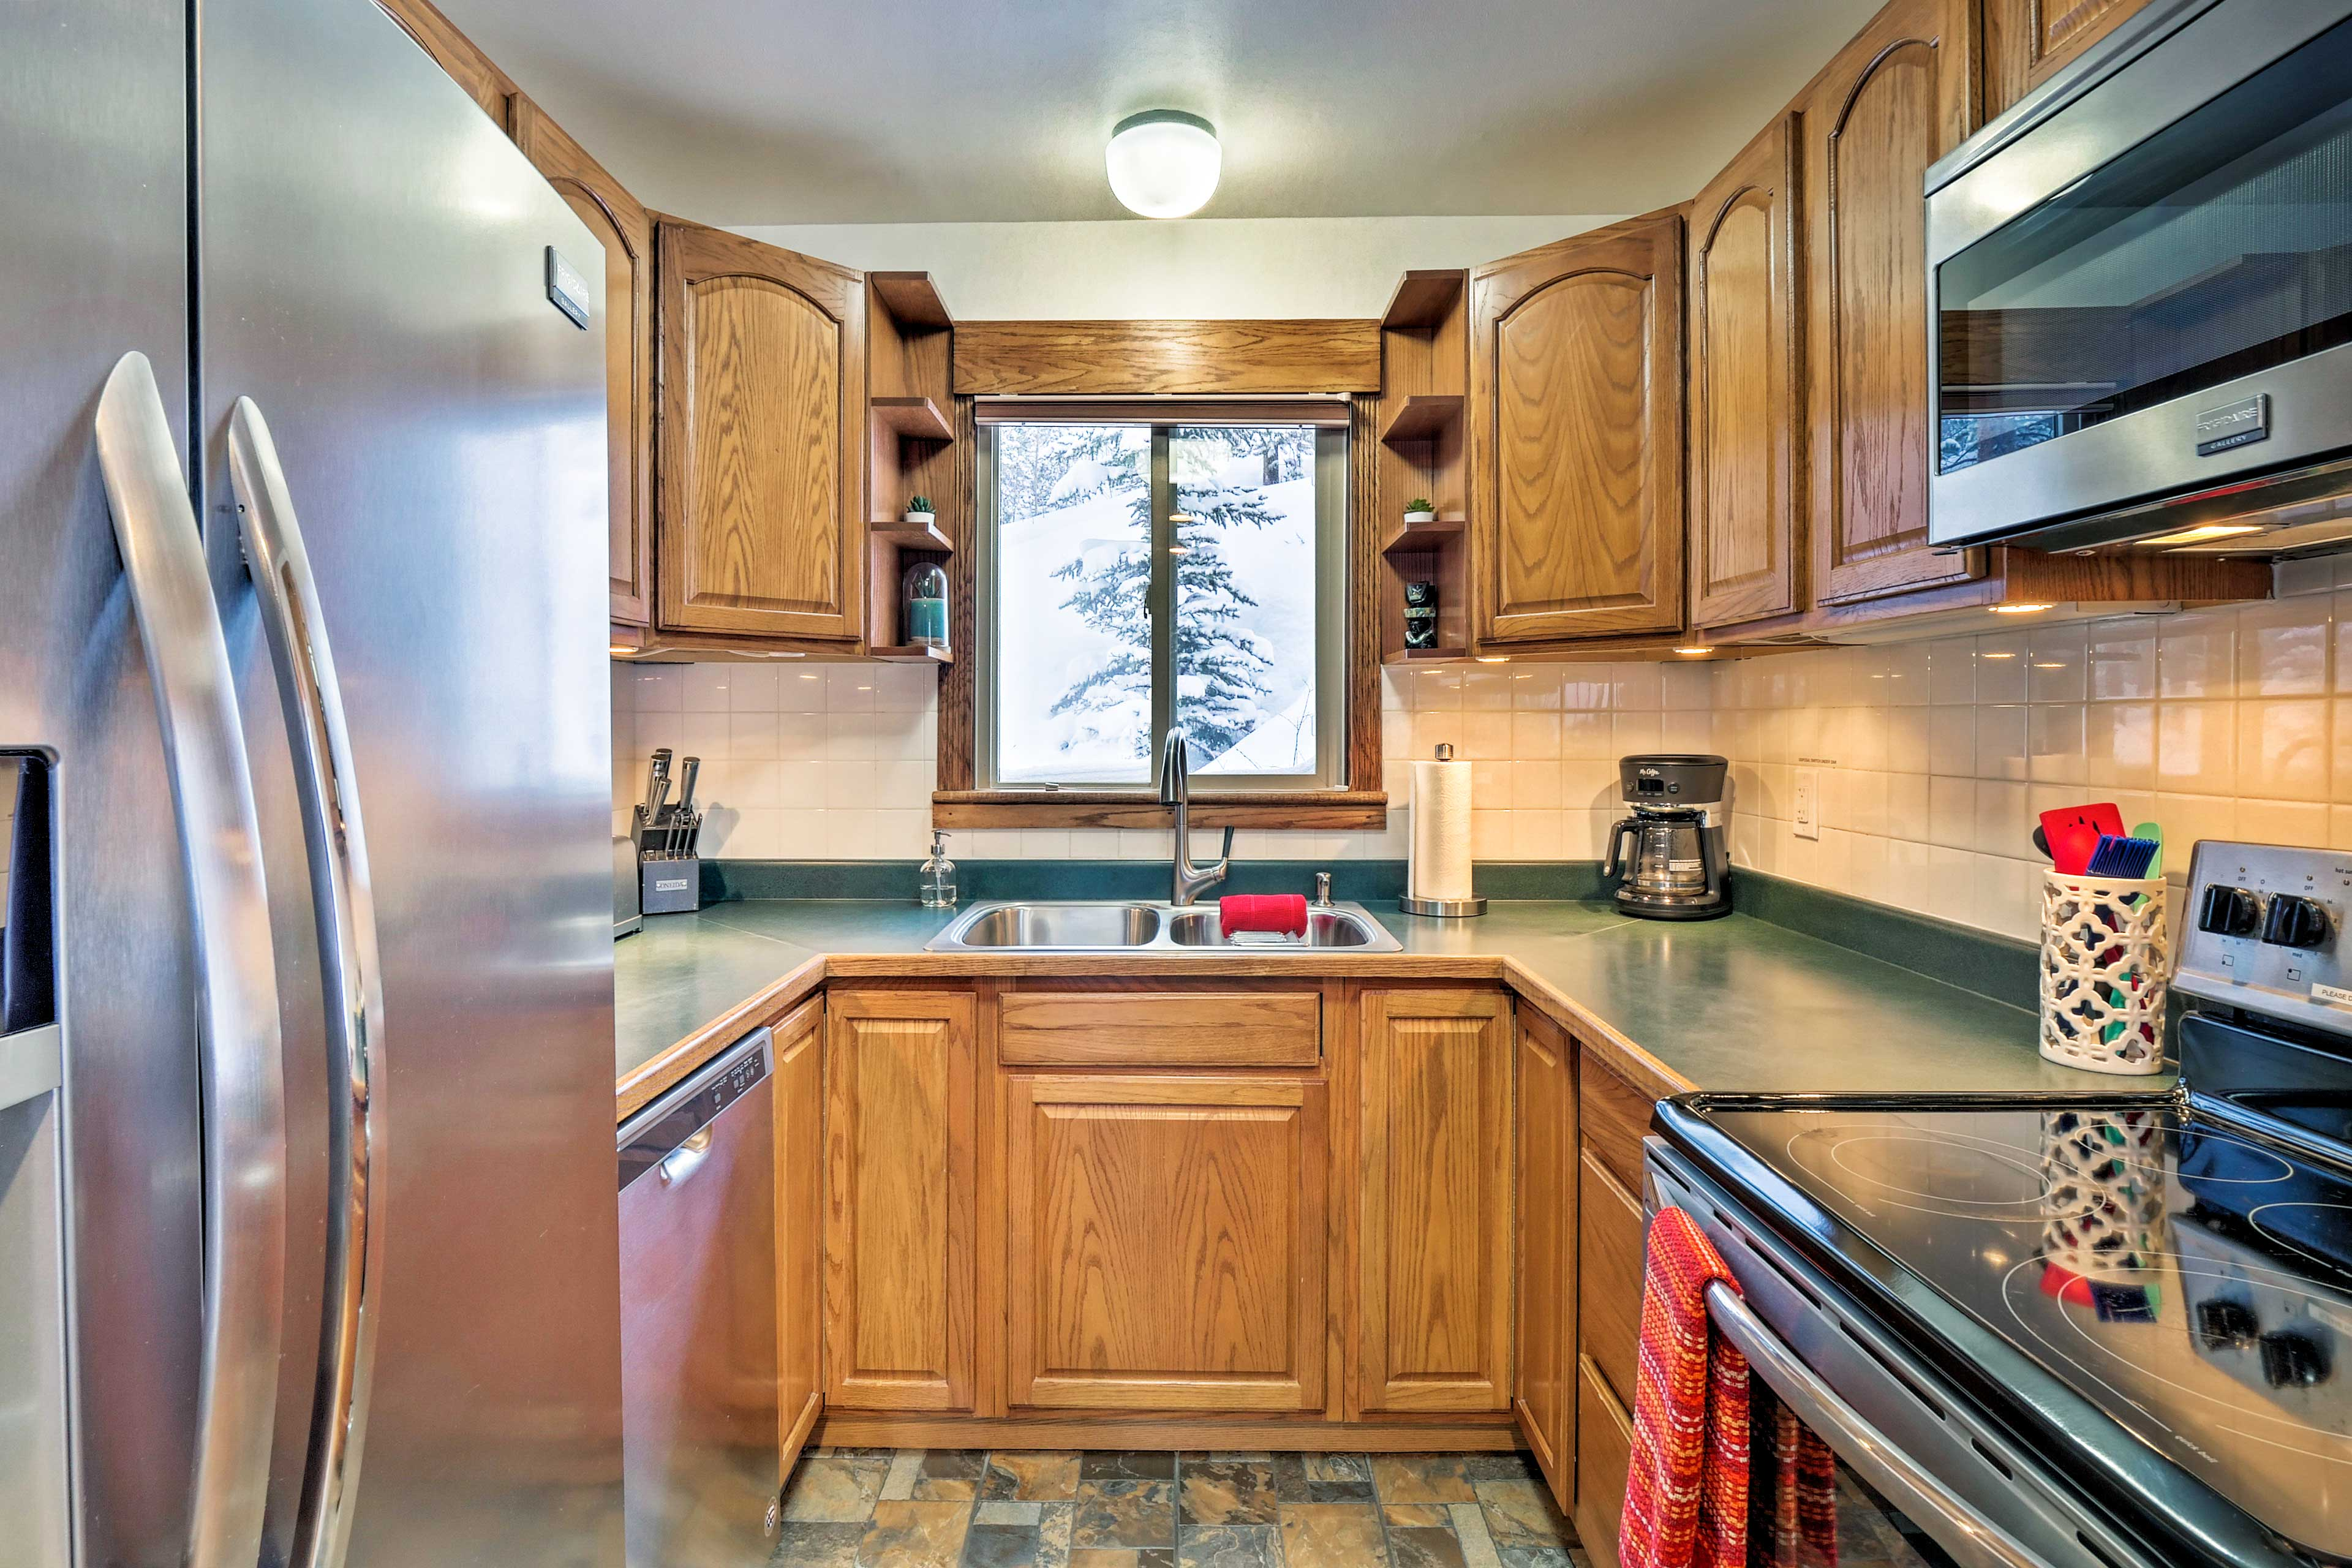 Kitchen | Fully Equipped | Drip Coffee Maker